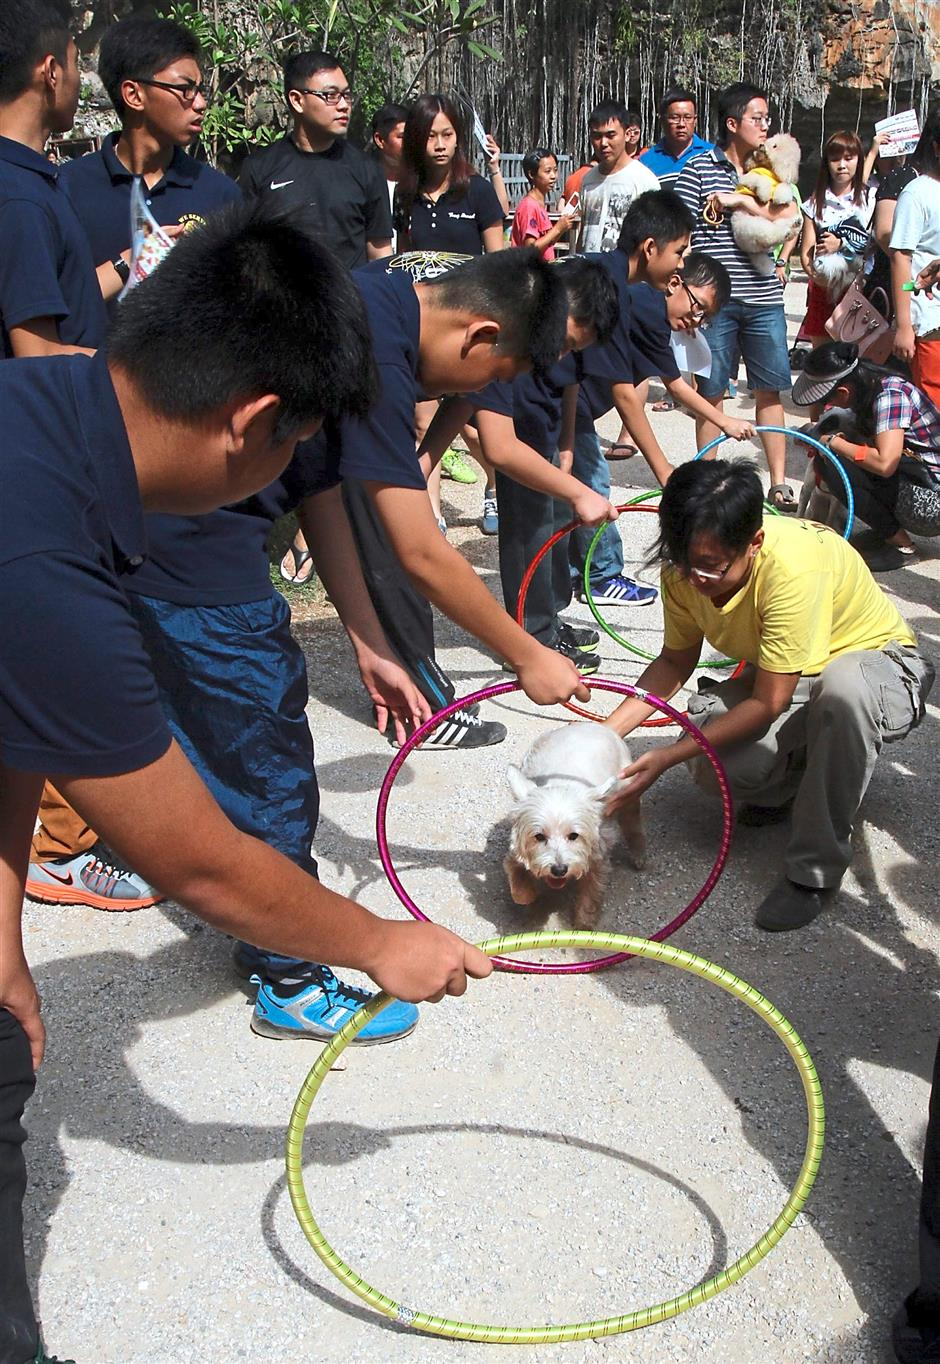 ipapets230815 3... A pet owner (in yellow, right) guiding its dog to jump through the hoops in the Hula Hoop Jumping category during the ISPCA Pets Sports Day at Qing Xin Ling Leisure and Cultural Village in Taman Saikat on Aug 23.